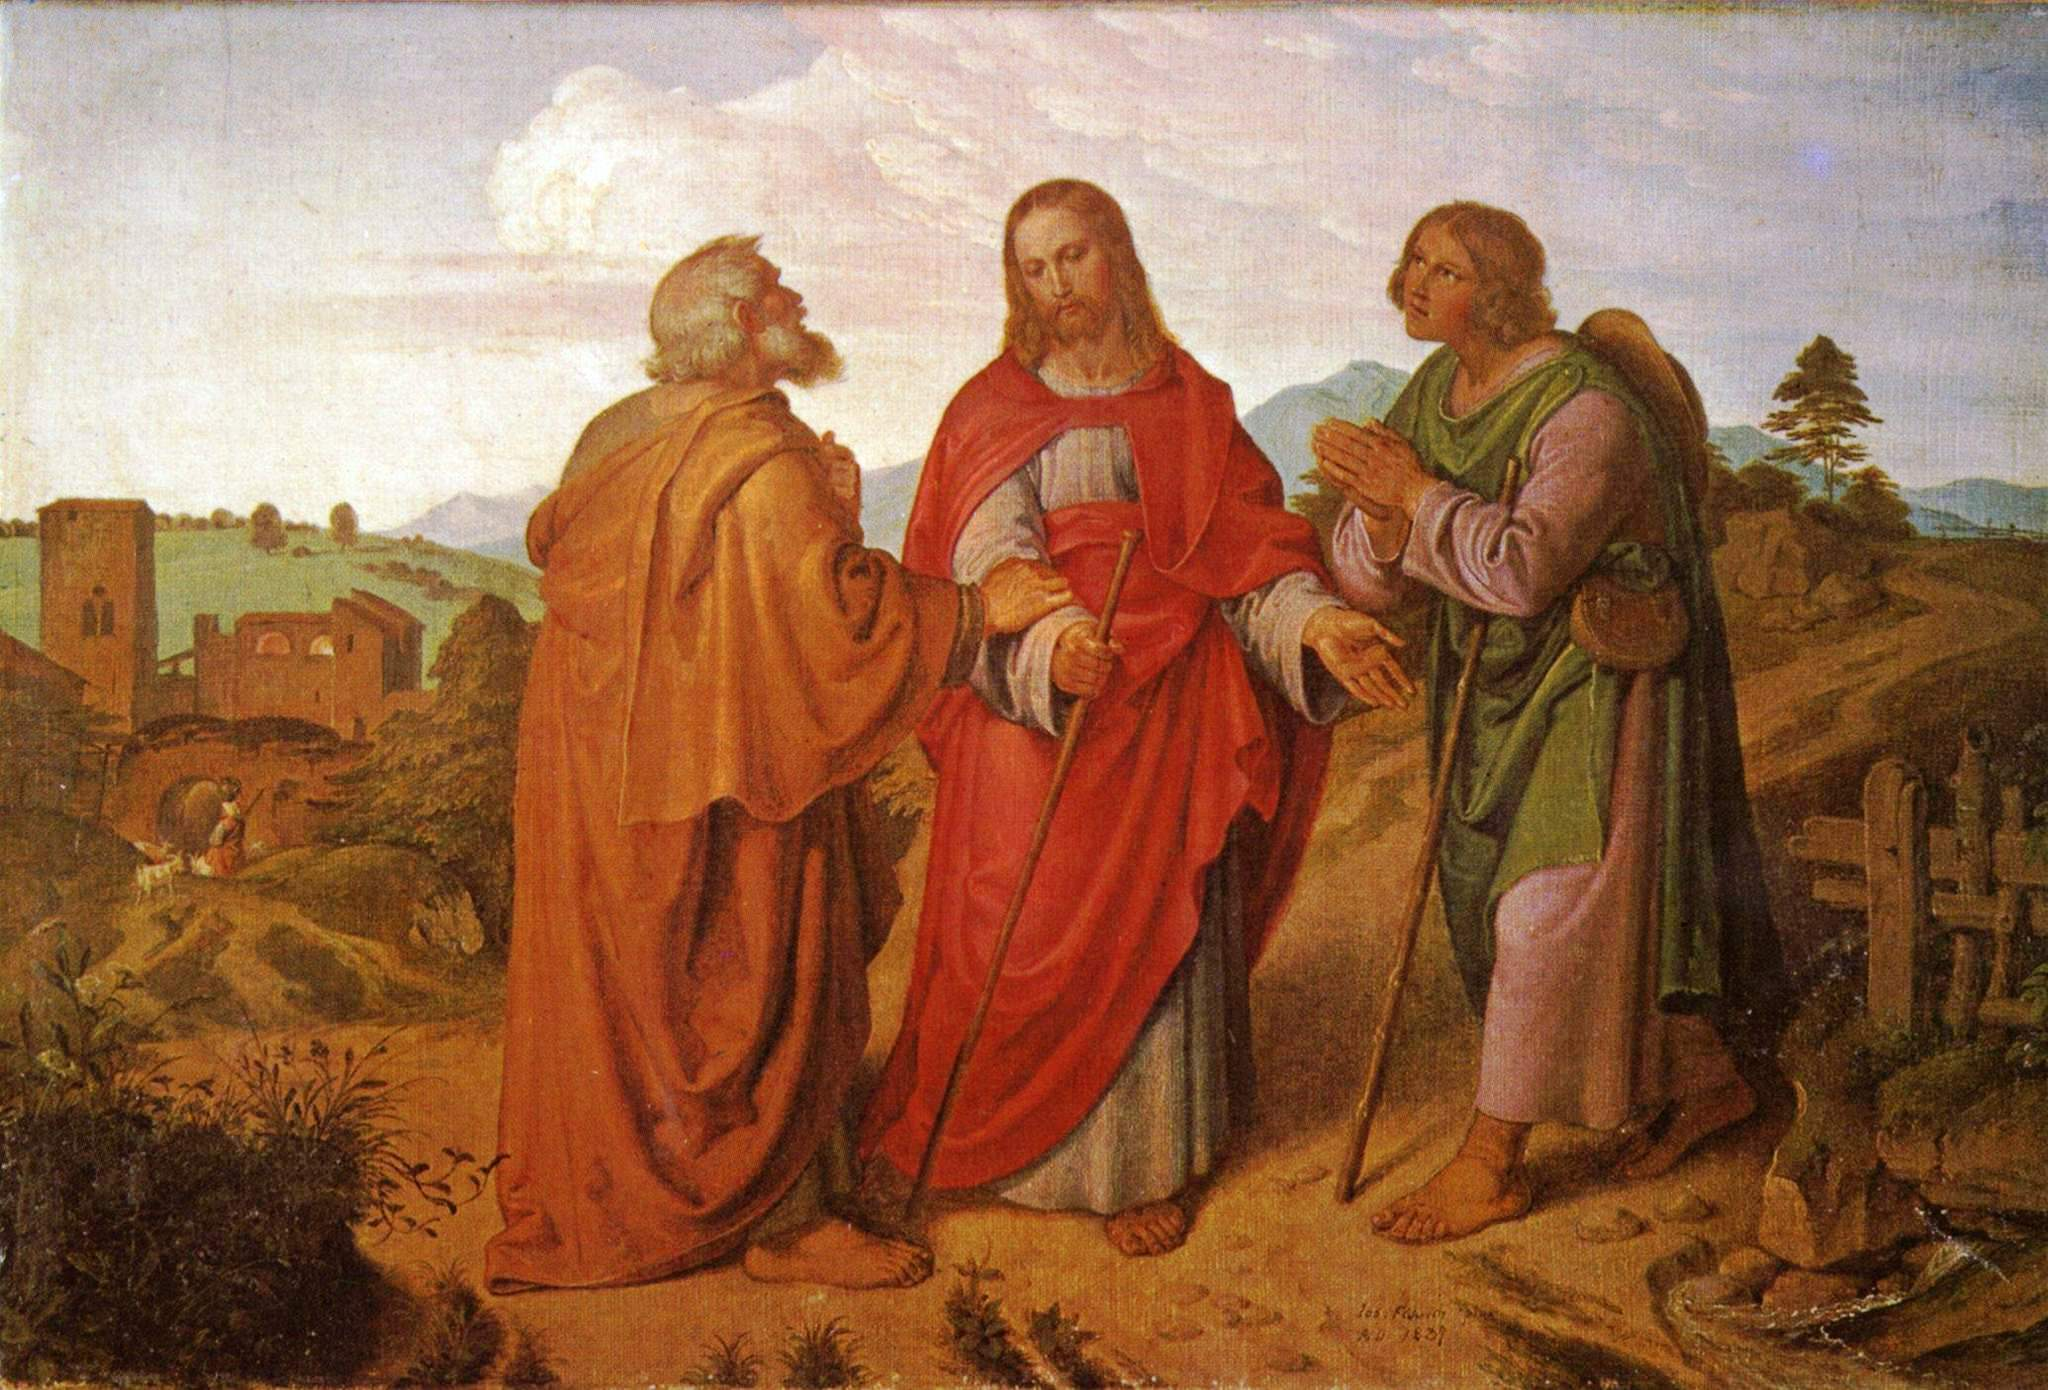 Debunking the Conspiracy Theory: 7 Arguments Why Jesus